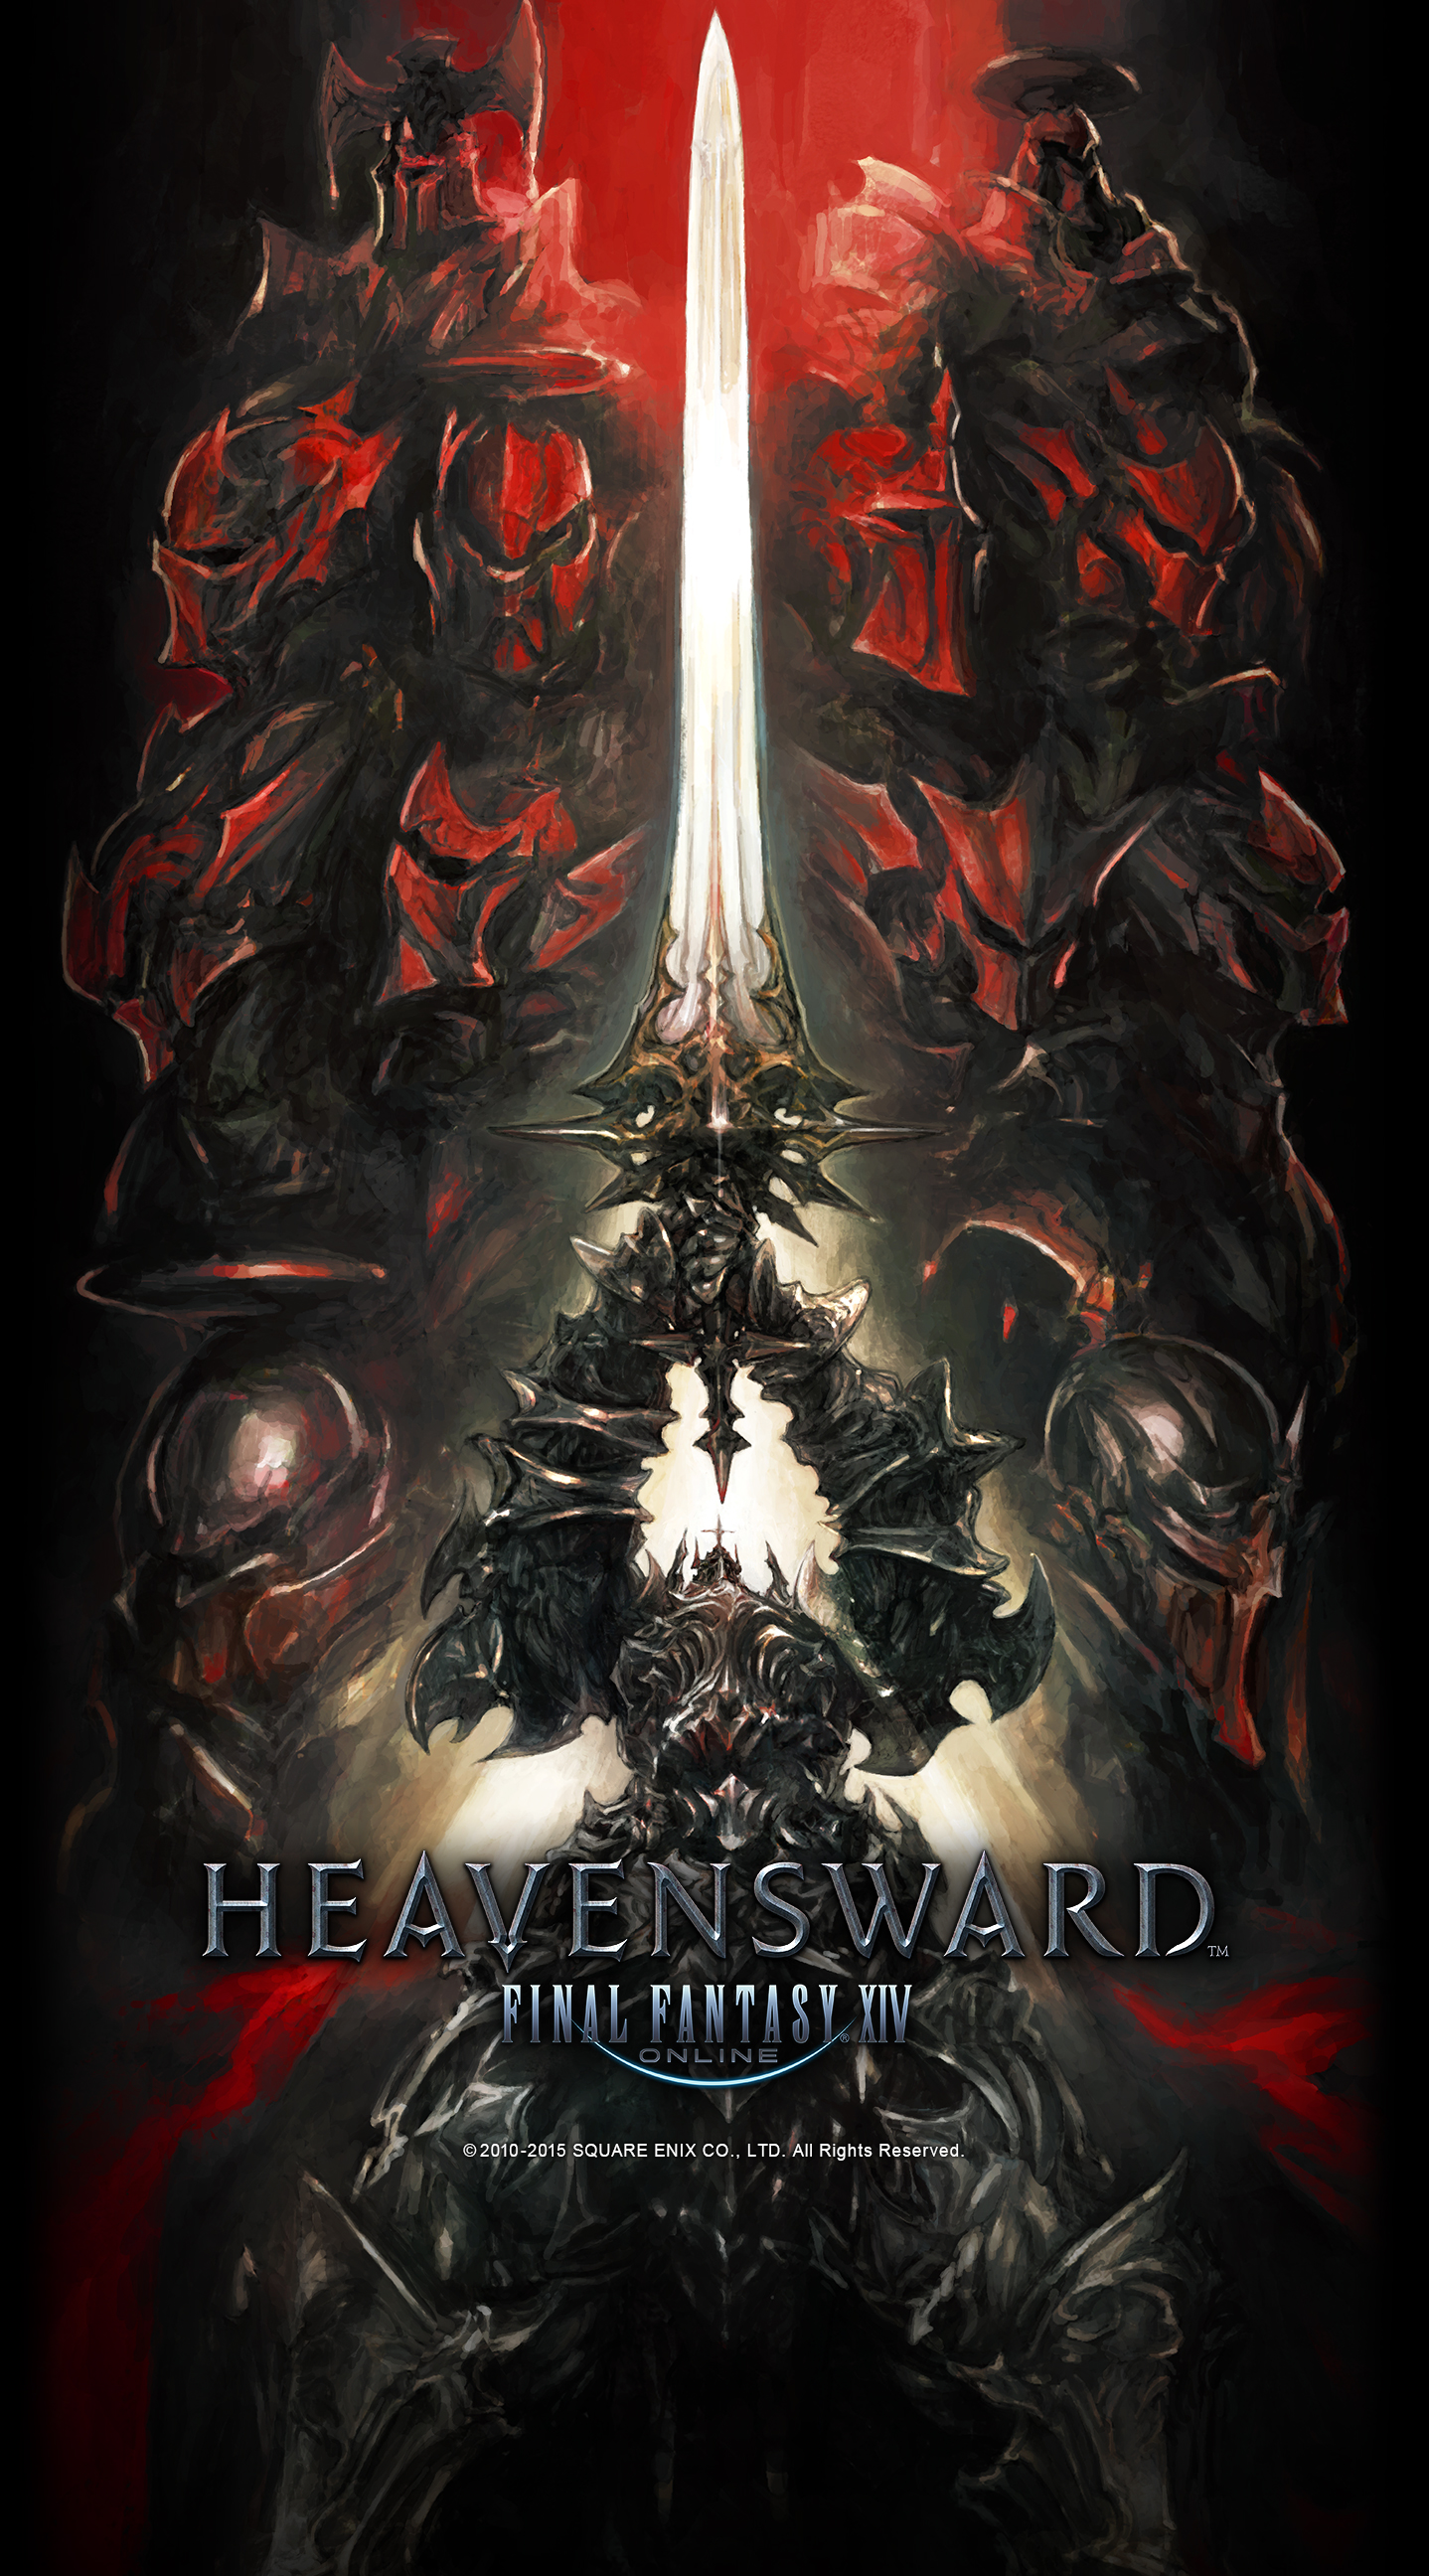 FINAL FANTASY XIV Fan Kit TGS 2015 Edition – Part 4 9 20